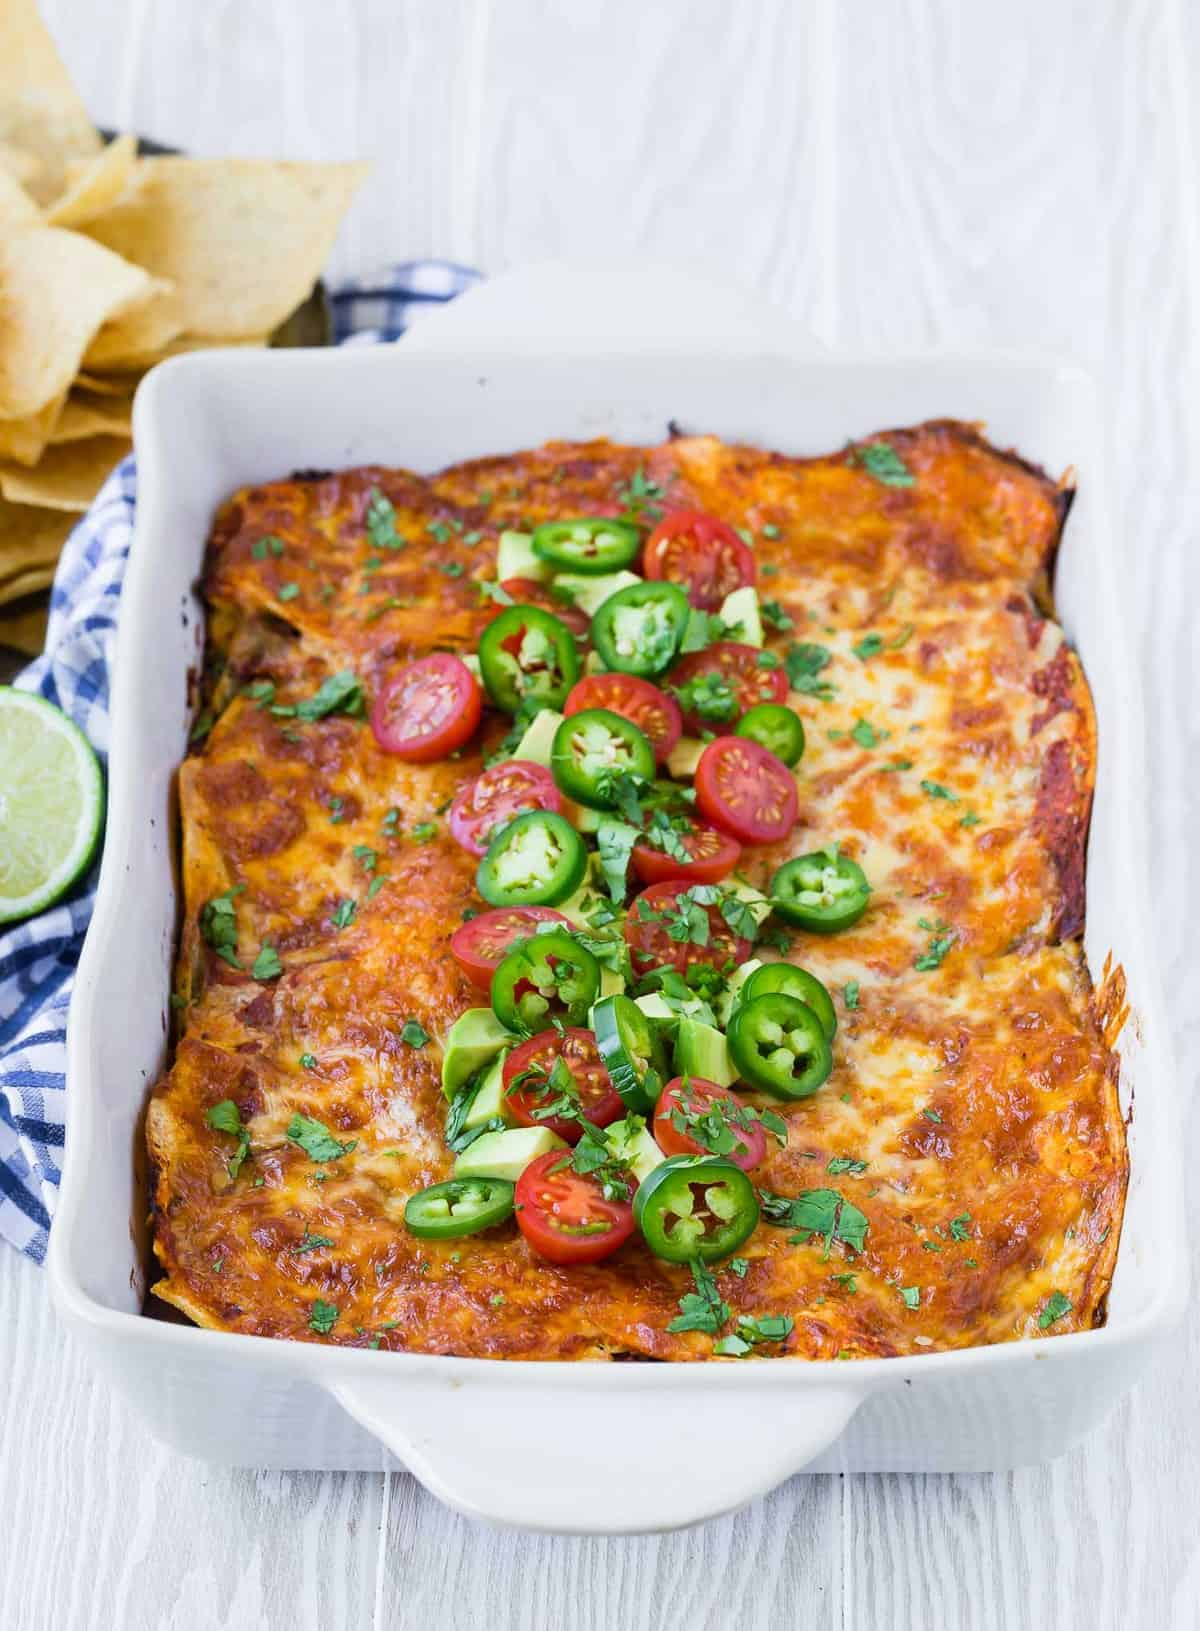 Casserole dish of healthy mexican lasagna with southwestern garnishes.